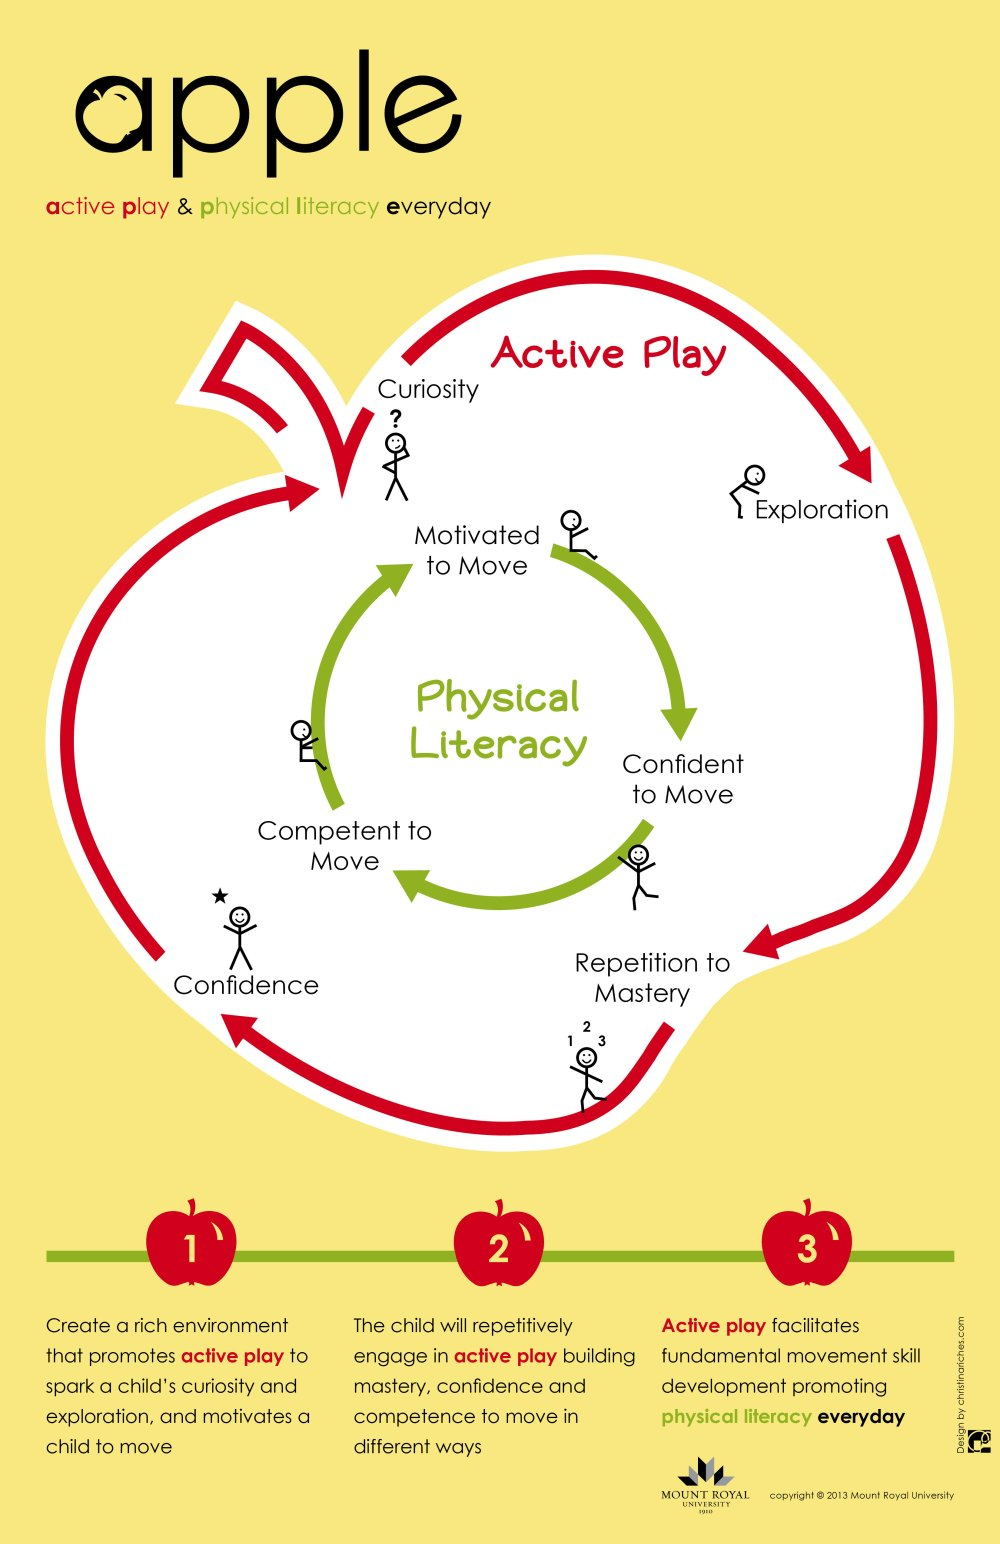 medium resolution of apple active play and physical literacy everyday